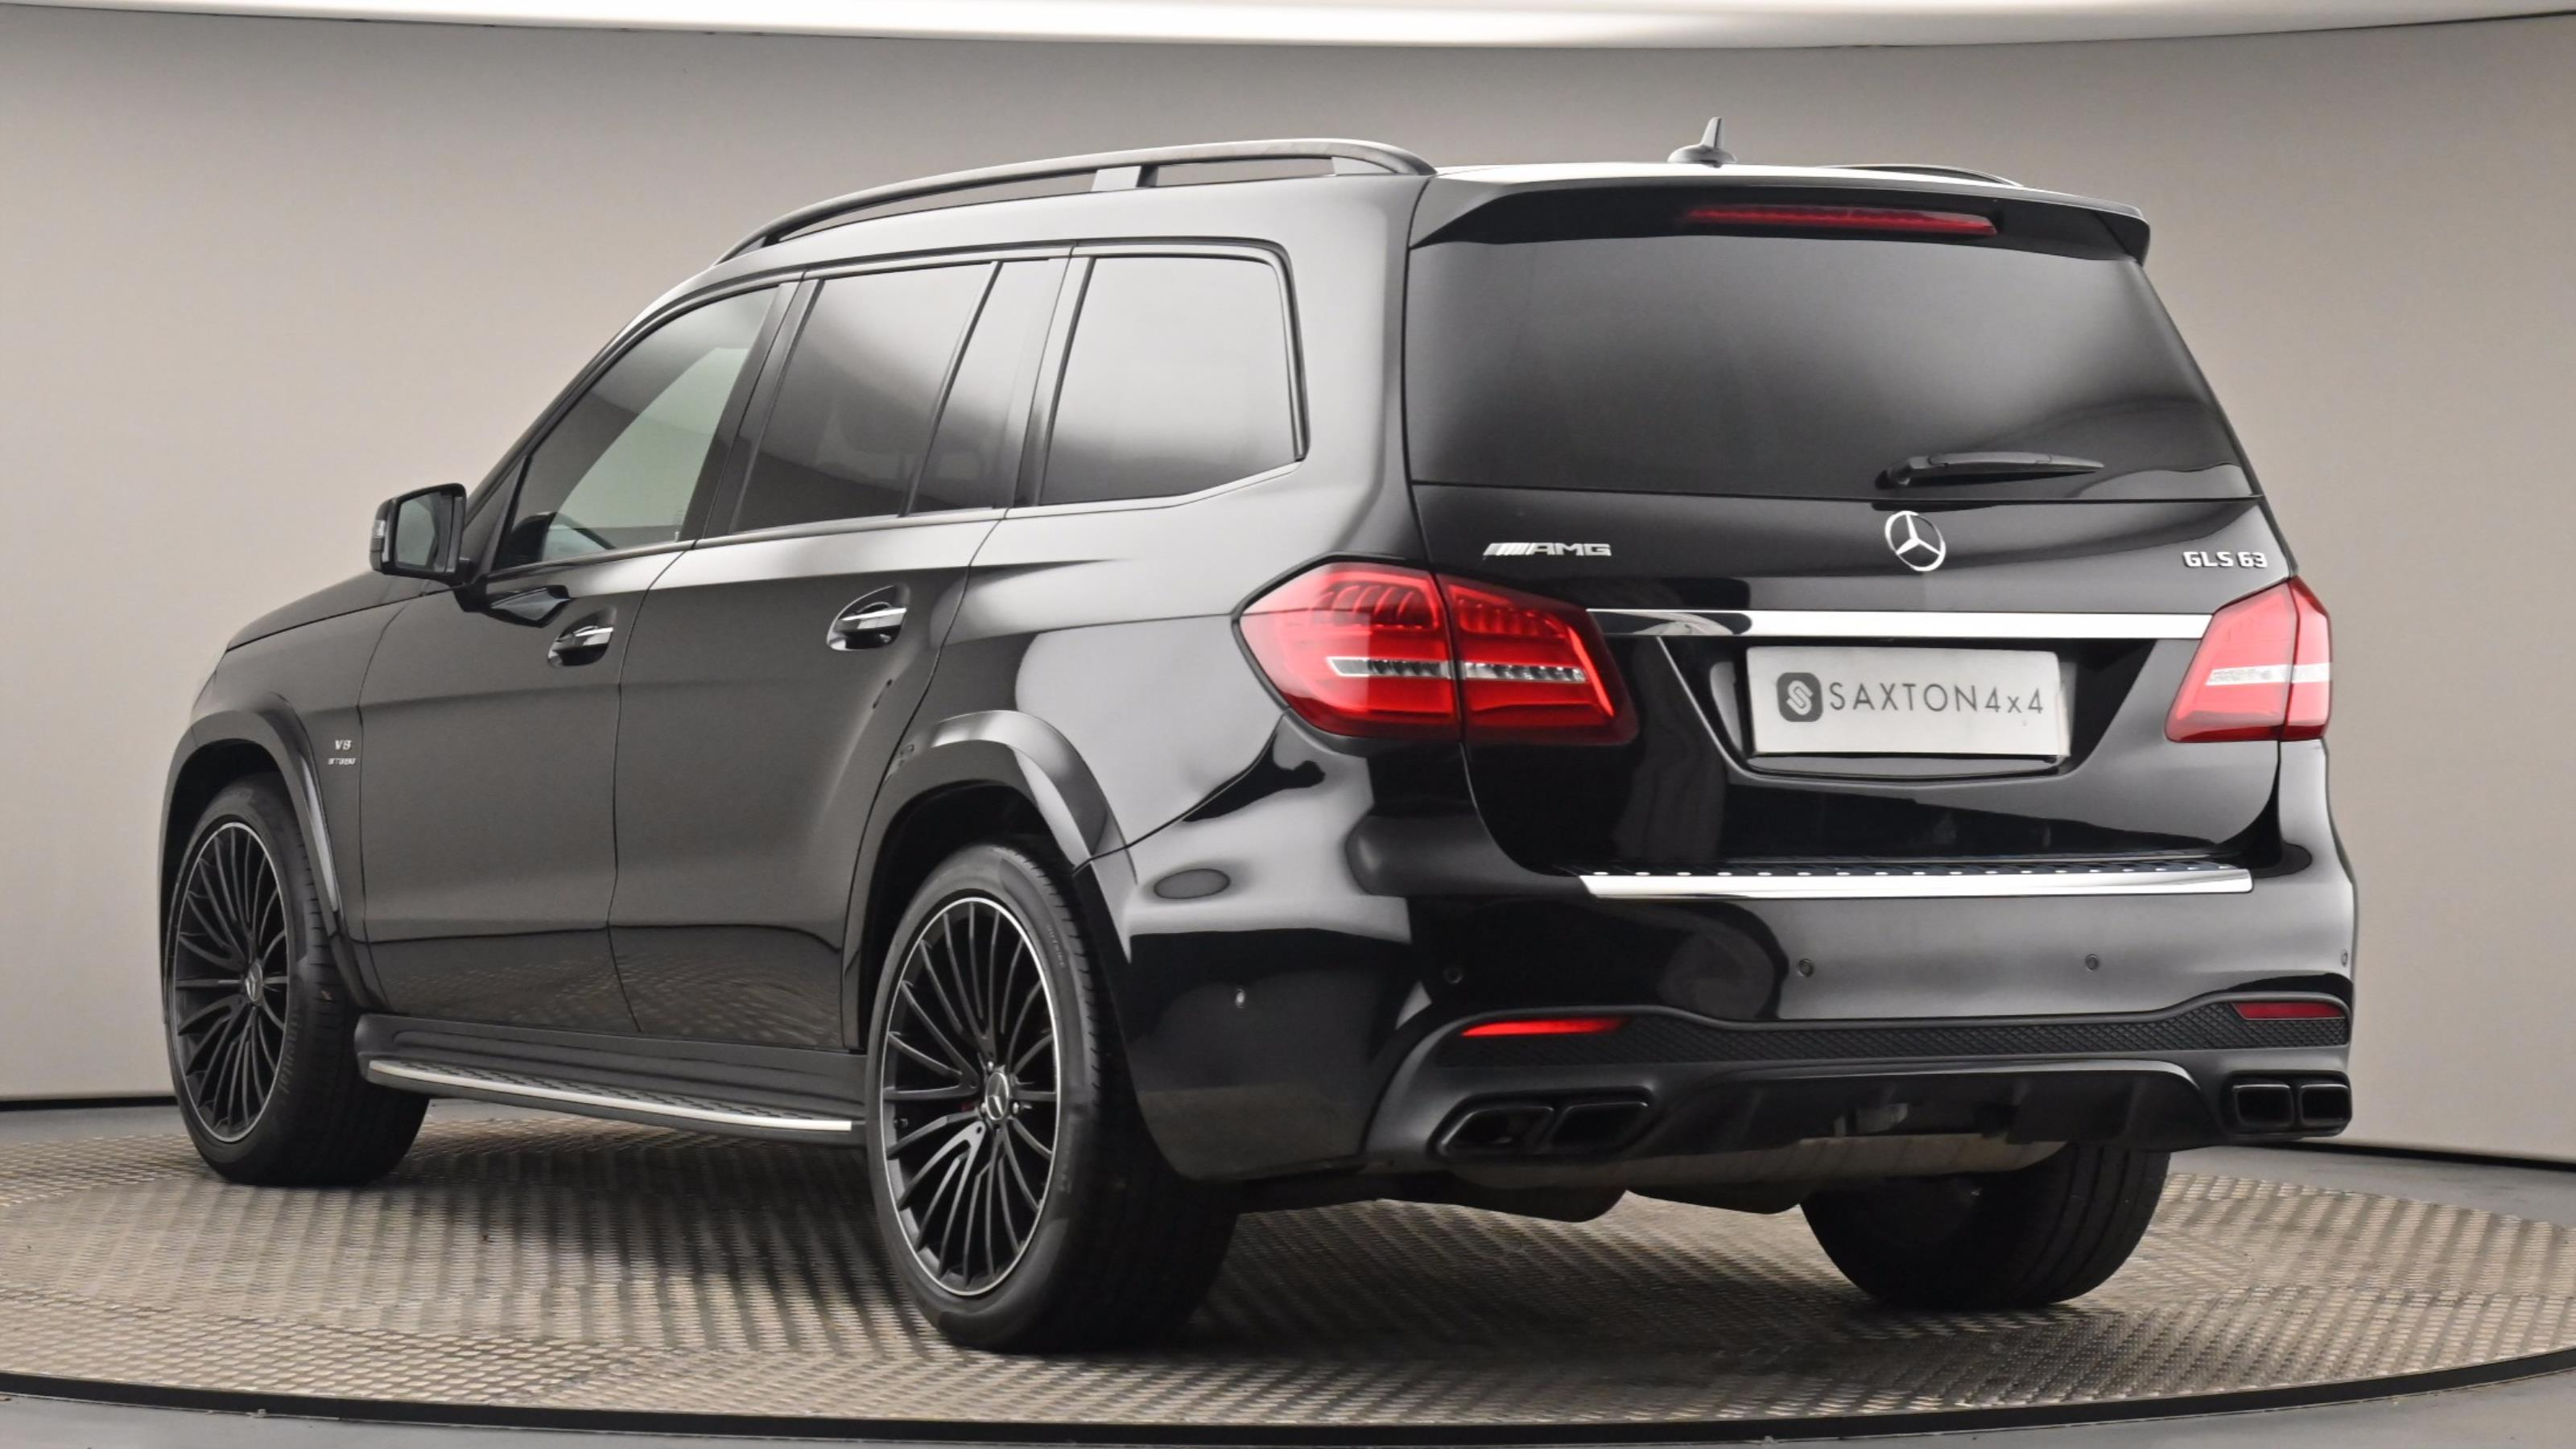 Used 2017 Mercedes-Benz GLS GLS 63 4Matic 5dr 7G-Tronic Black at Saxton4x4